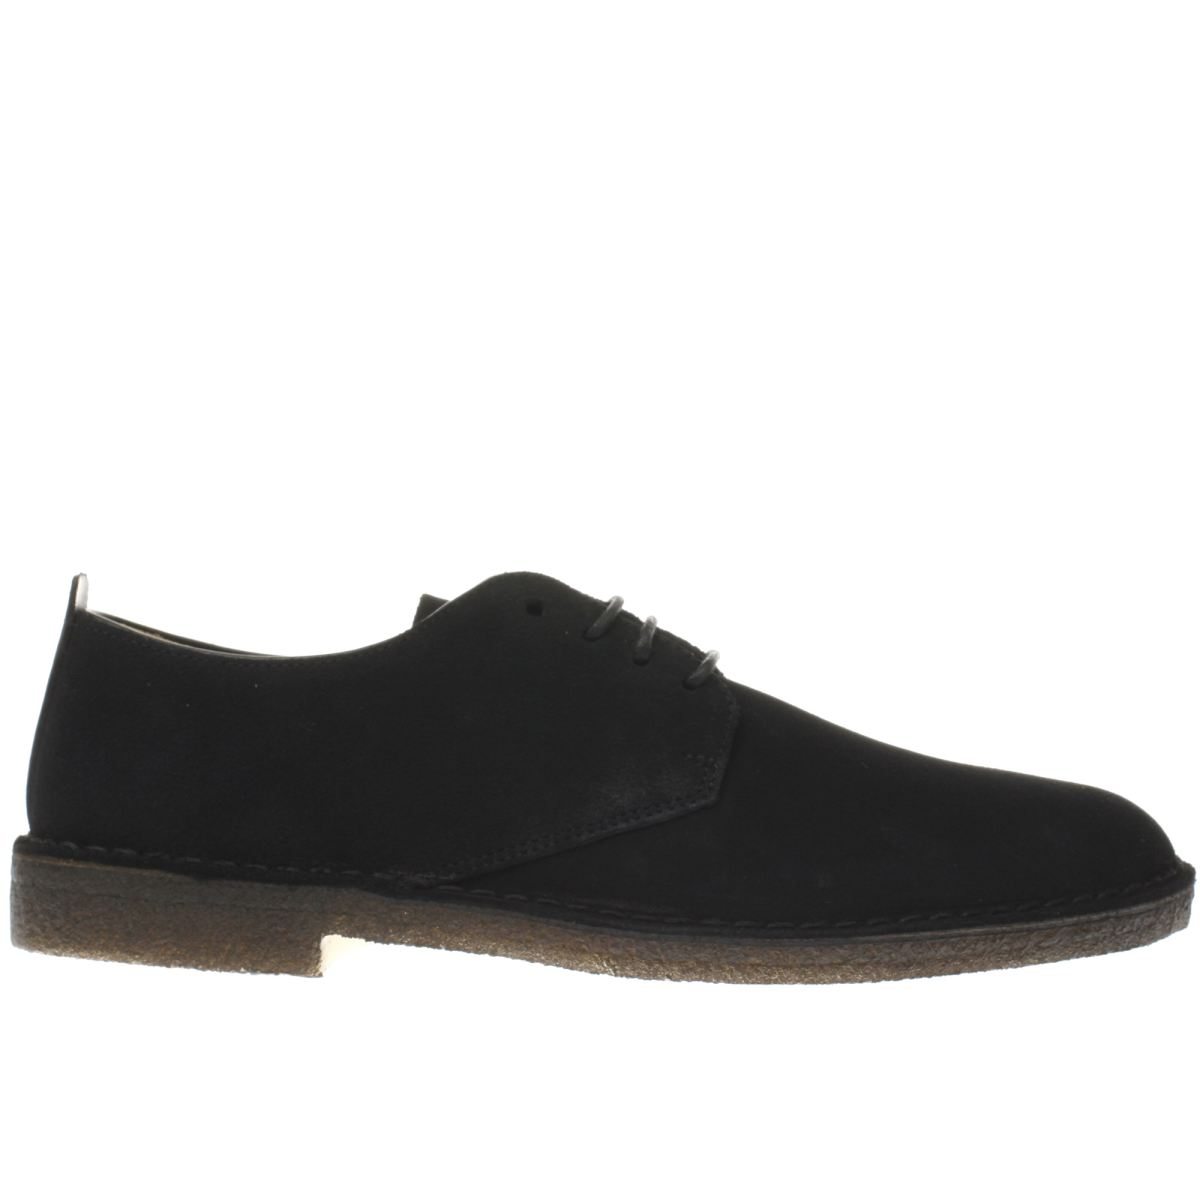 clarks originals black desert london shoes